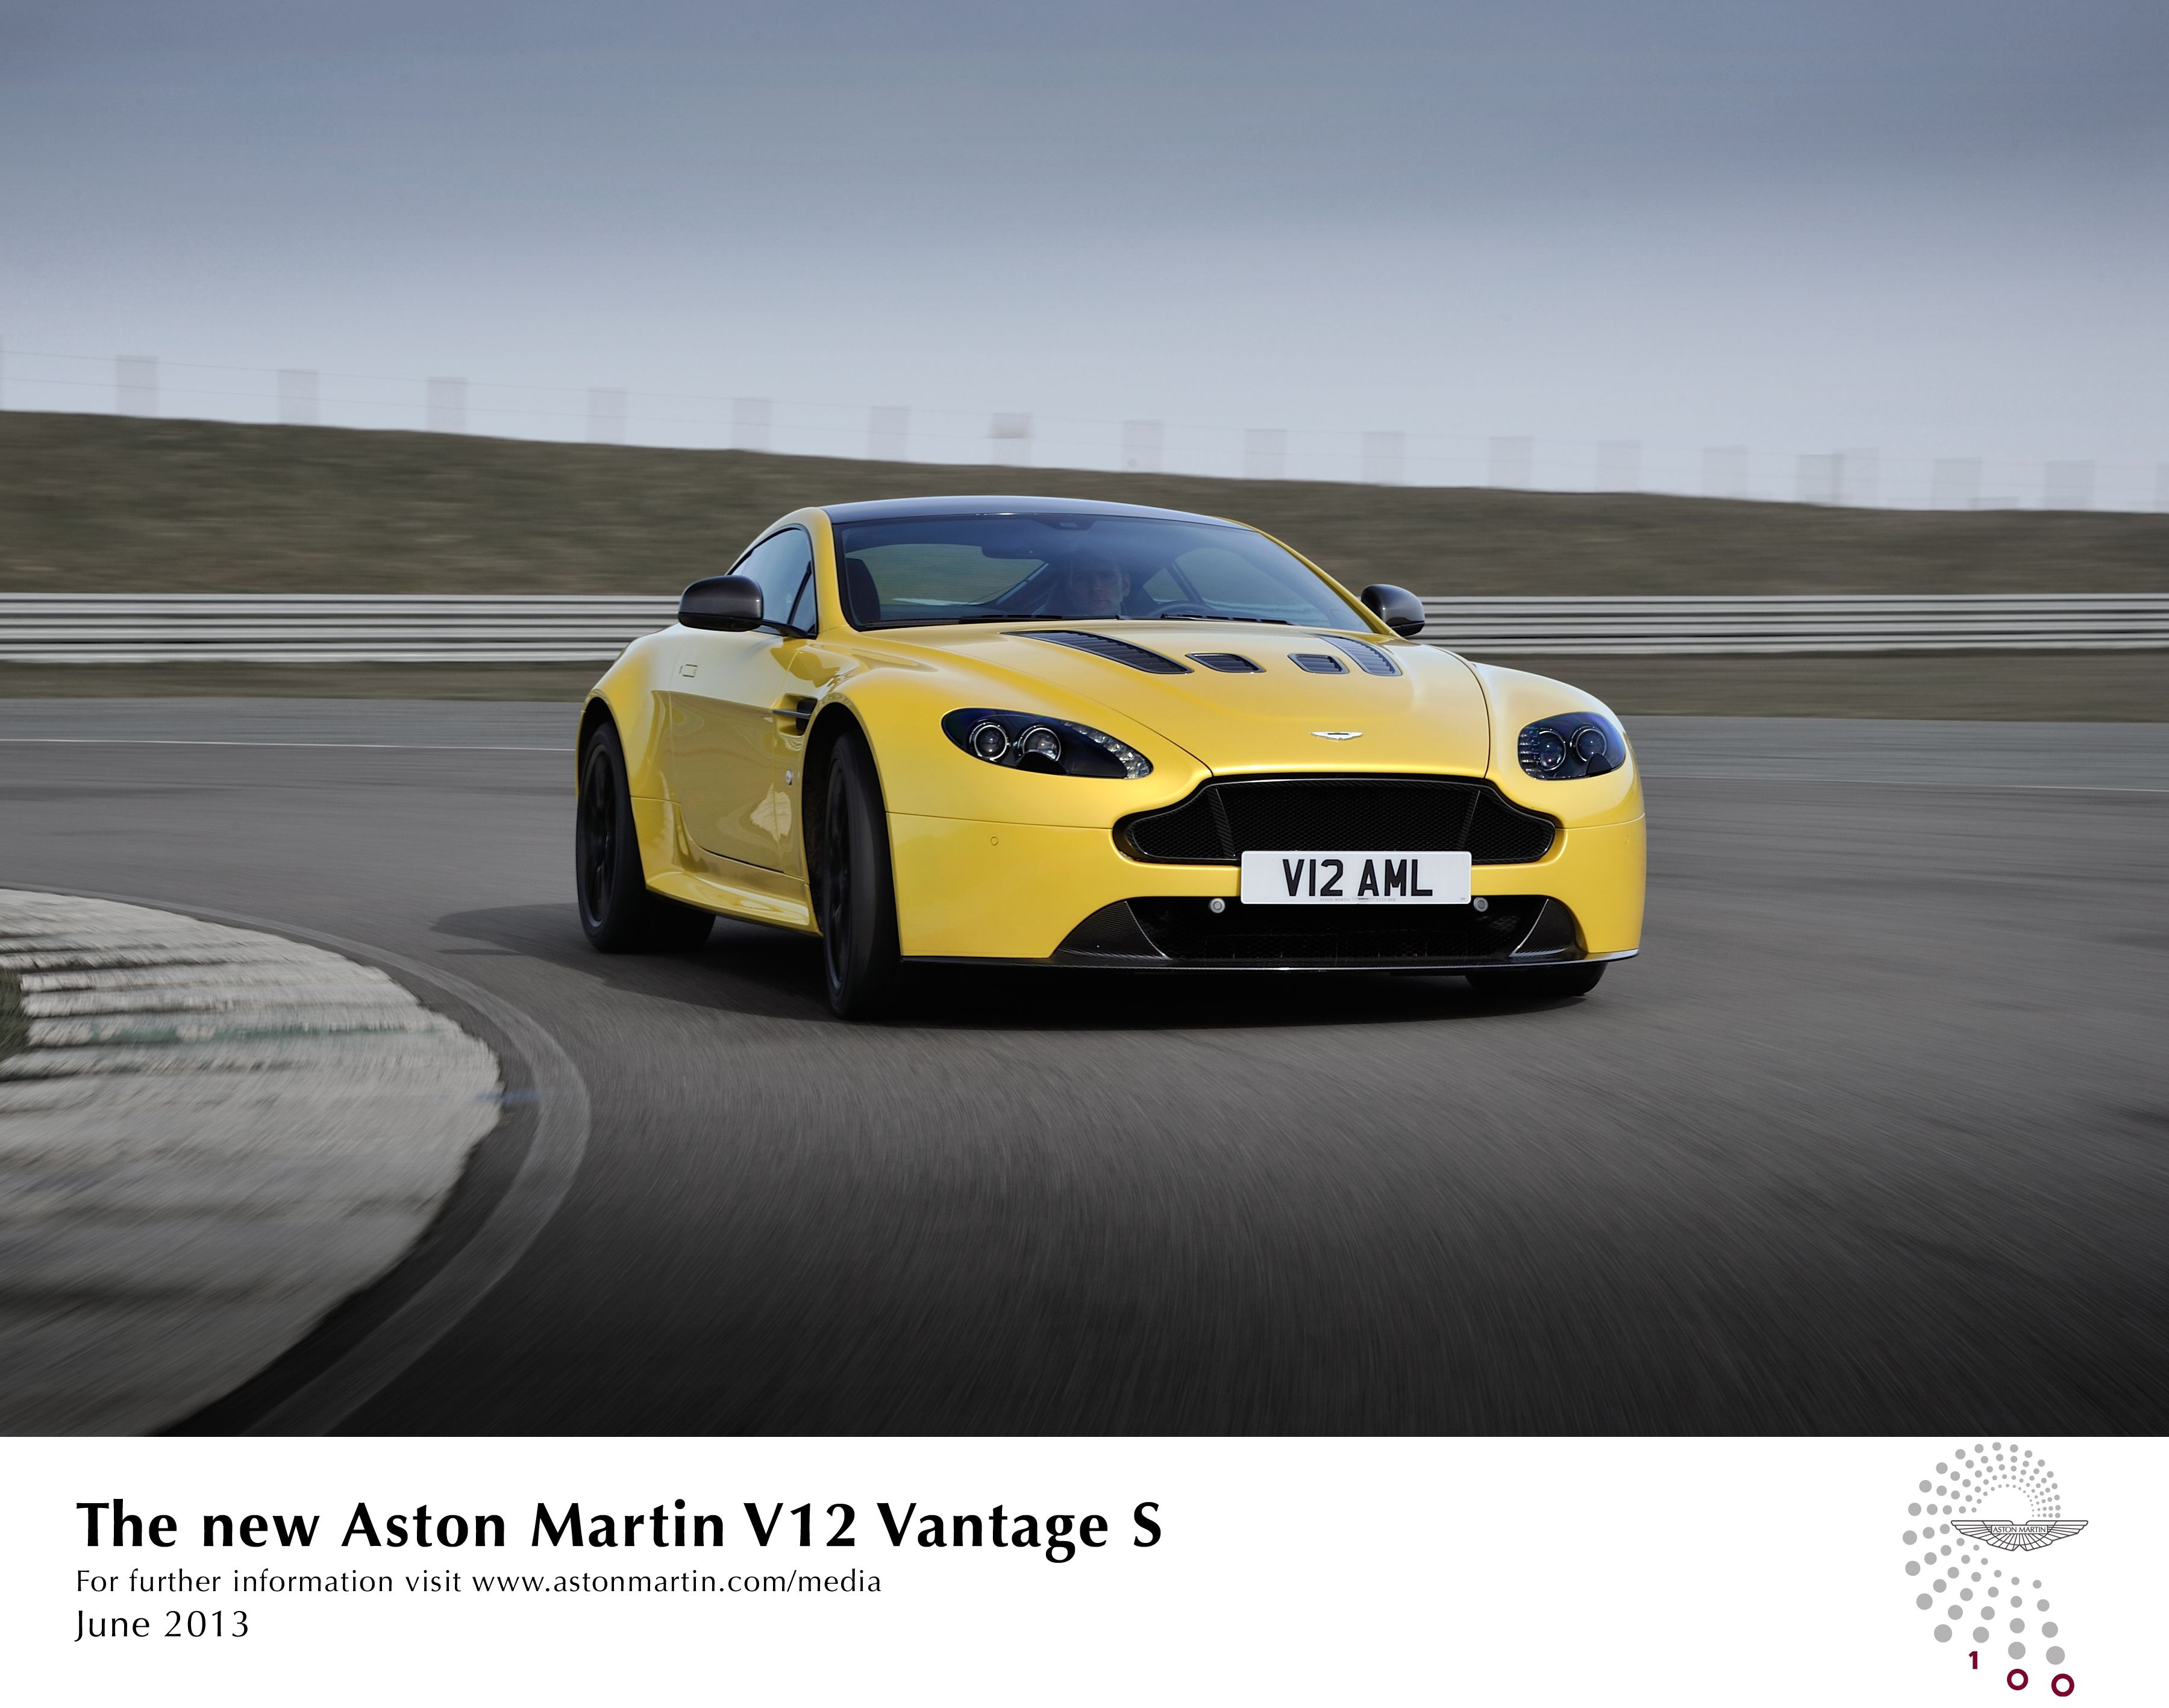 a full list of aston martin 0-60 and quarter mile times from 1981 to